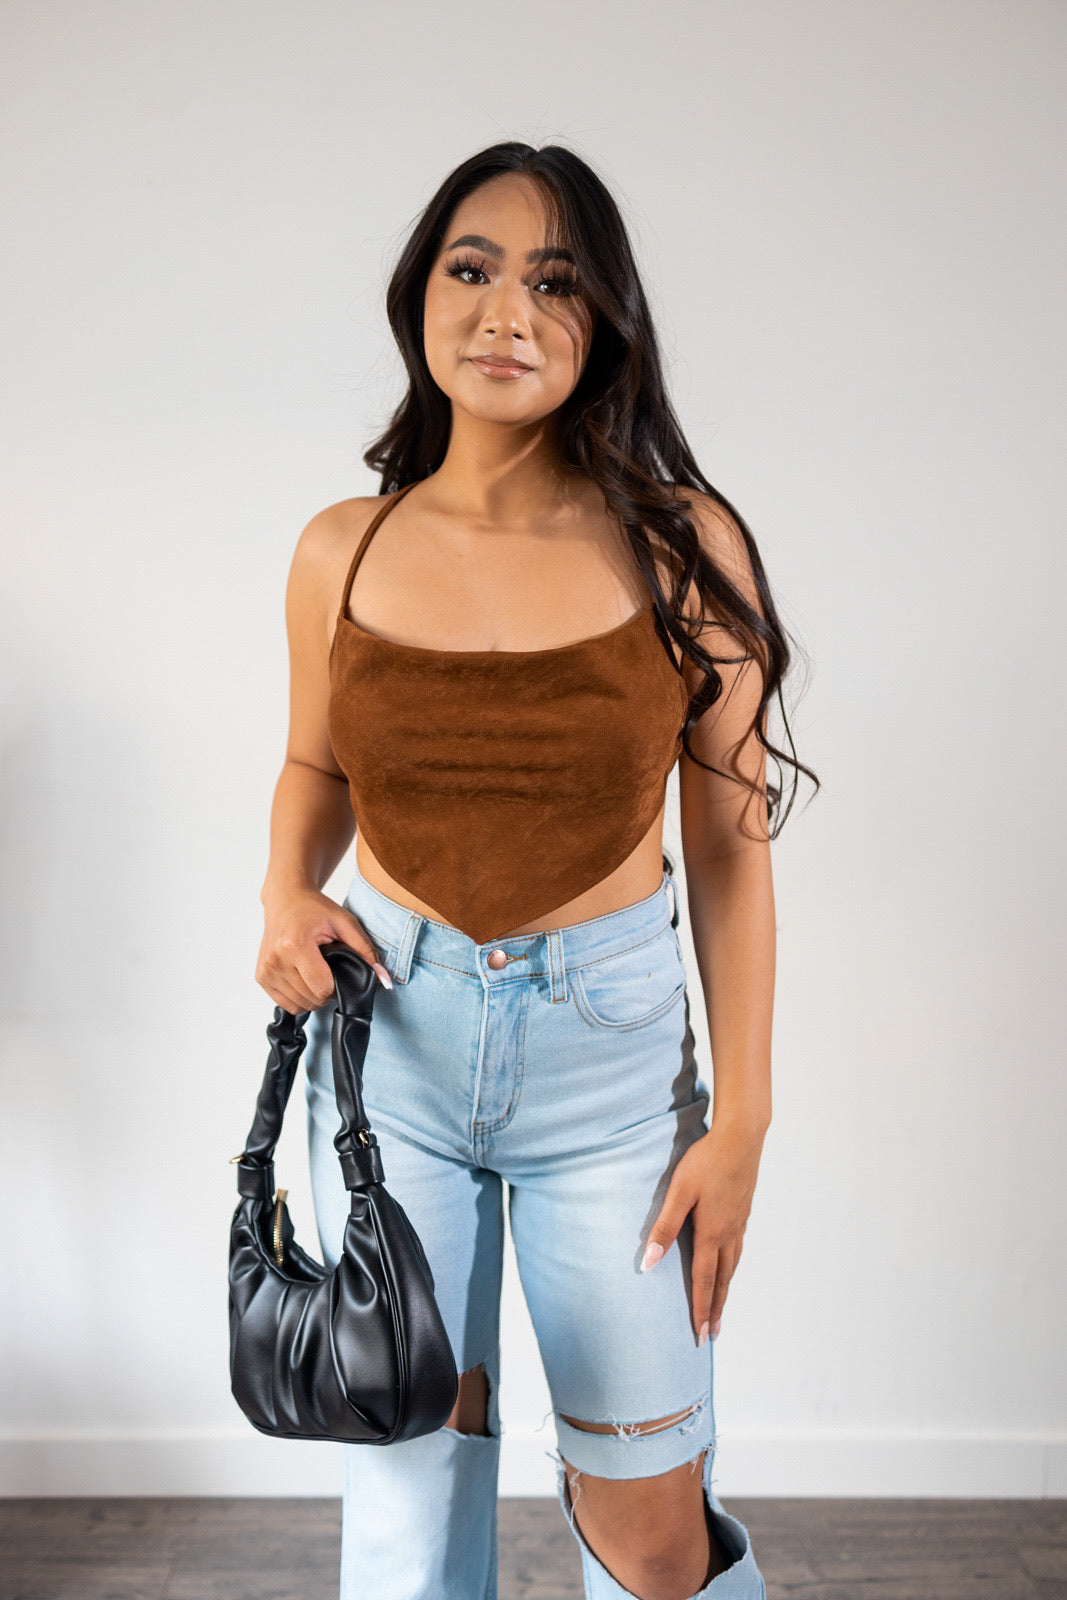 We are in love with our  best seller Jade corduroy crop top in a new color brown. This is a mini soft corduroy scarf style  crop top featuring open tie back with very good stretch. Complete the look by paring it up with our Alyssa wide leg jeans & Ella pleated shoulder bag.